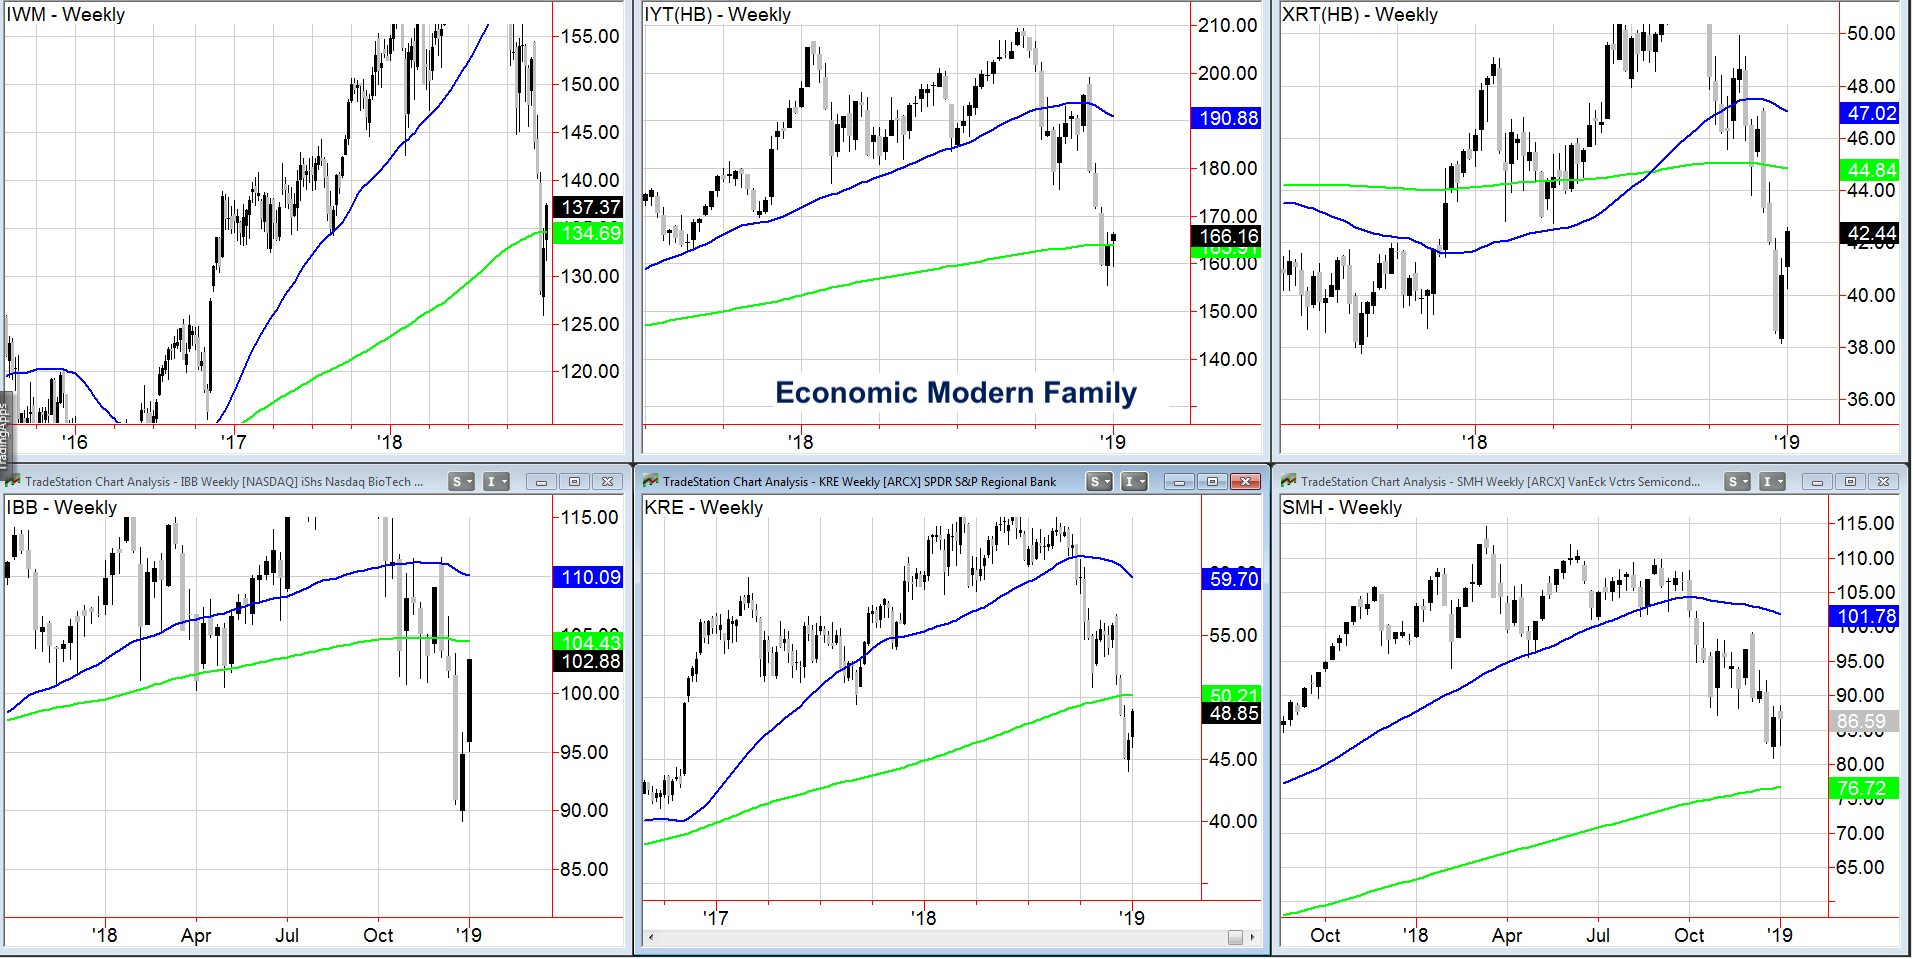 stock market etfs investing analysis research week january 7_economic modern family